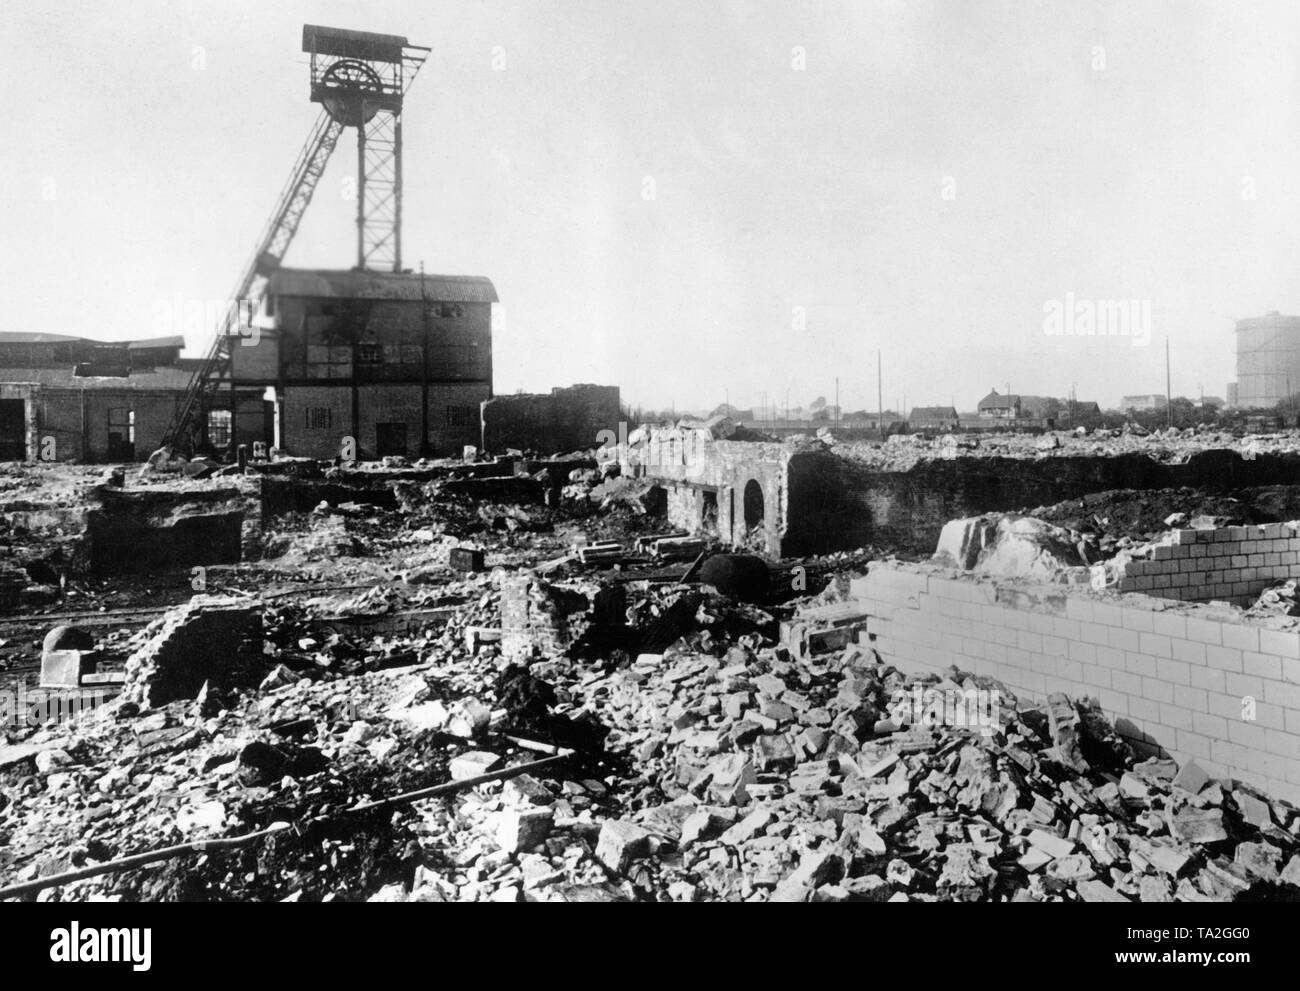 View over the ruin of the Vollmond mine in Bochum. The buildings are partially demolished or collapsed. The shaft tower is still standing. - Stock Image